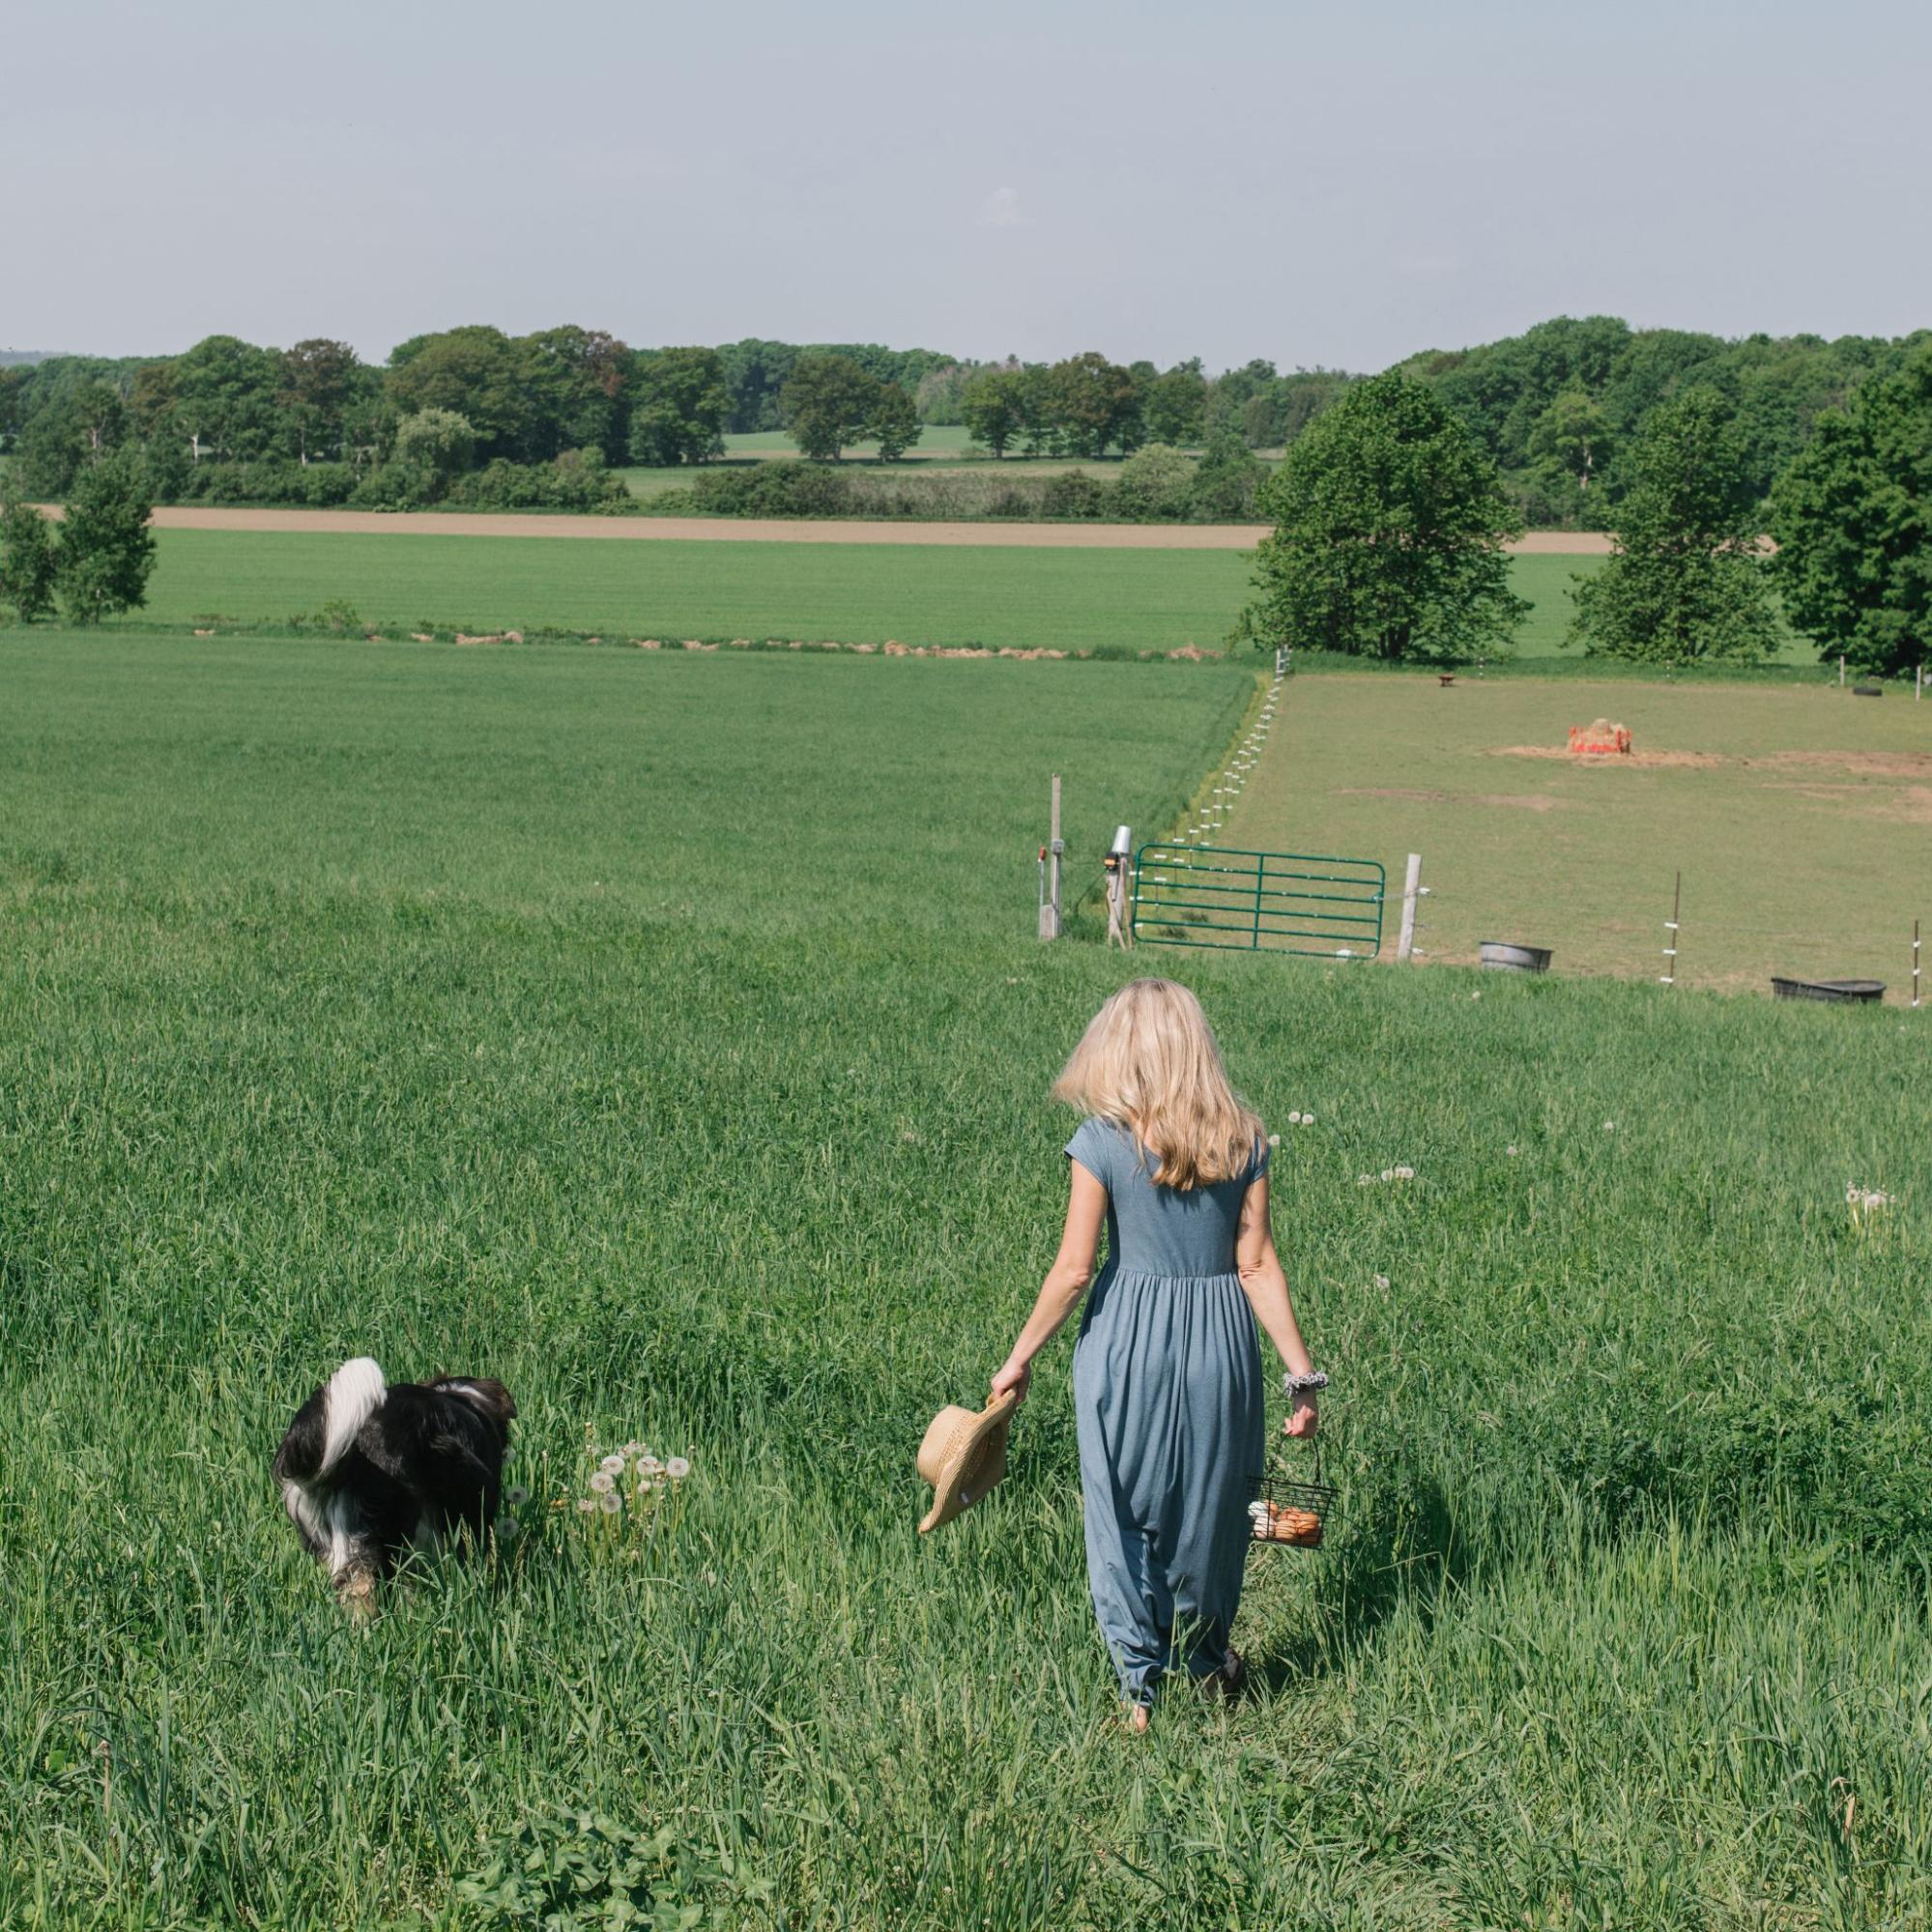 A model along with a dog in a field, wearing a blue dress from Buttercream Clothing.